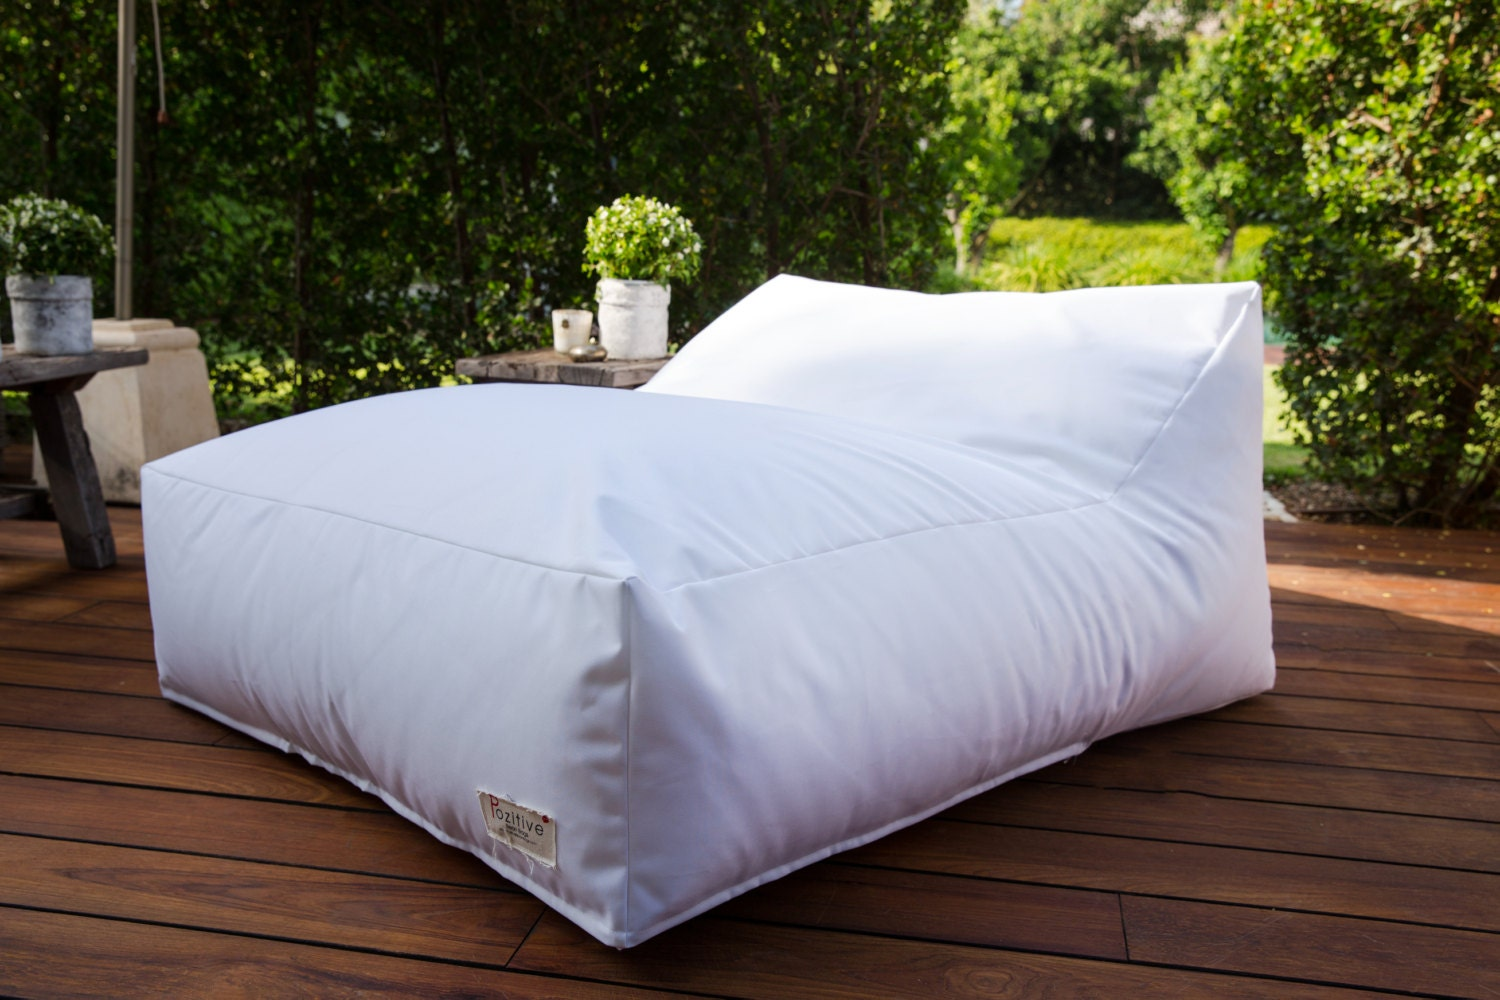 white bean bag chair outdoor large pouf outdoor floor. Black Bedroom Furniture Sets. Home Design Ideas